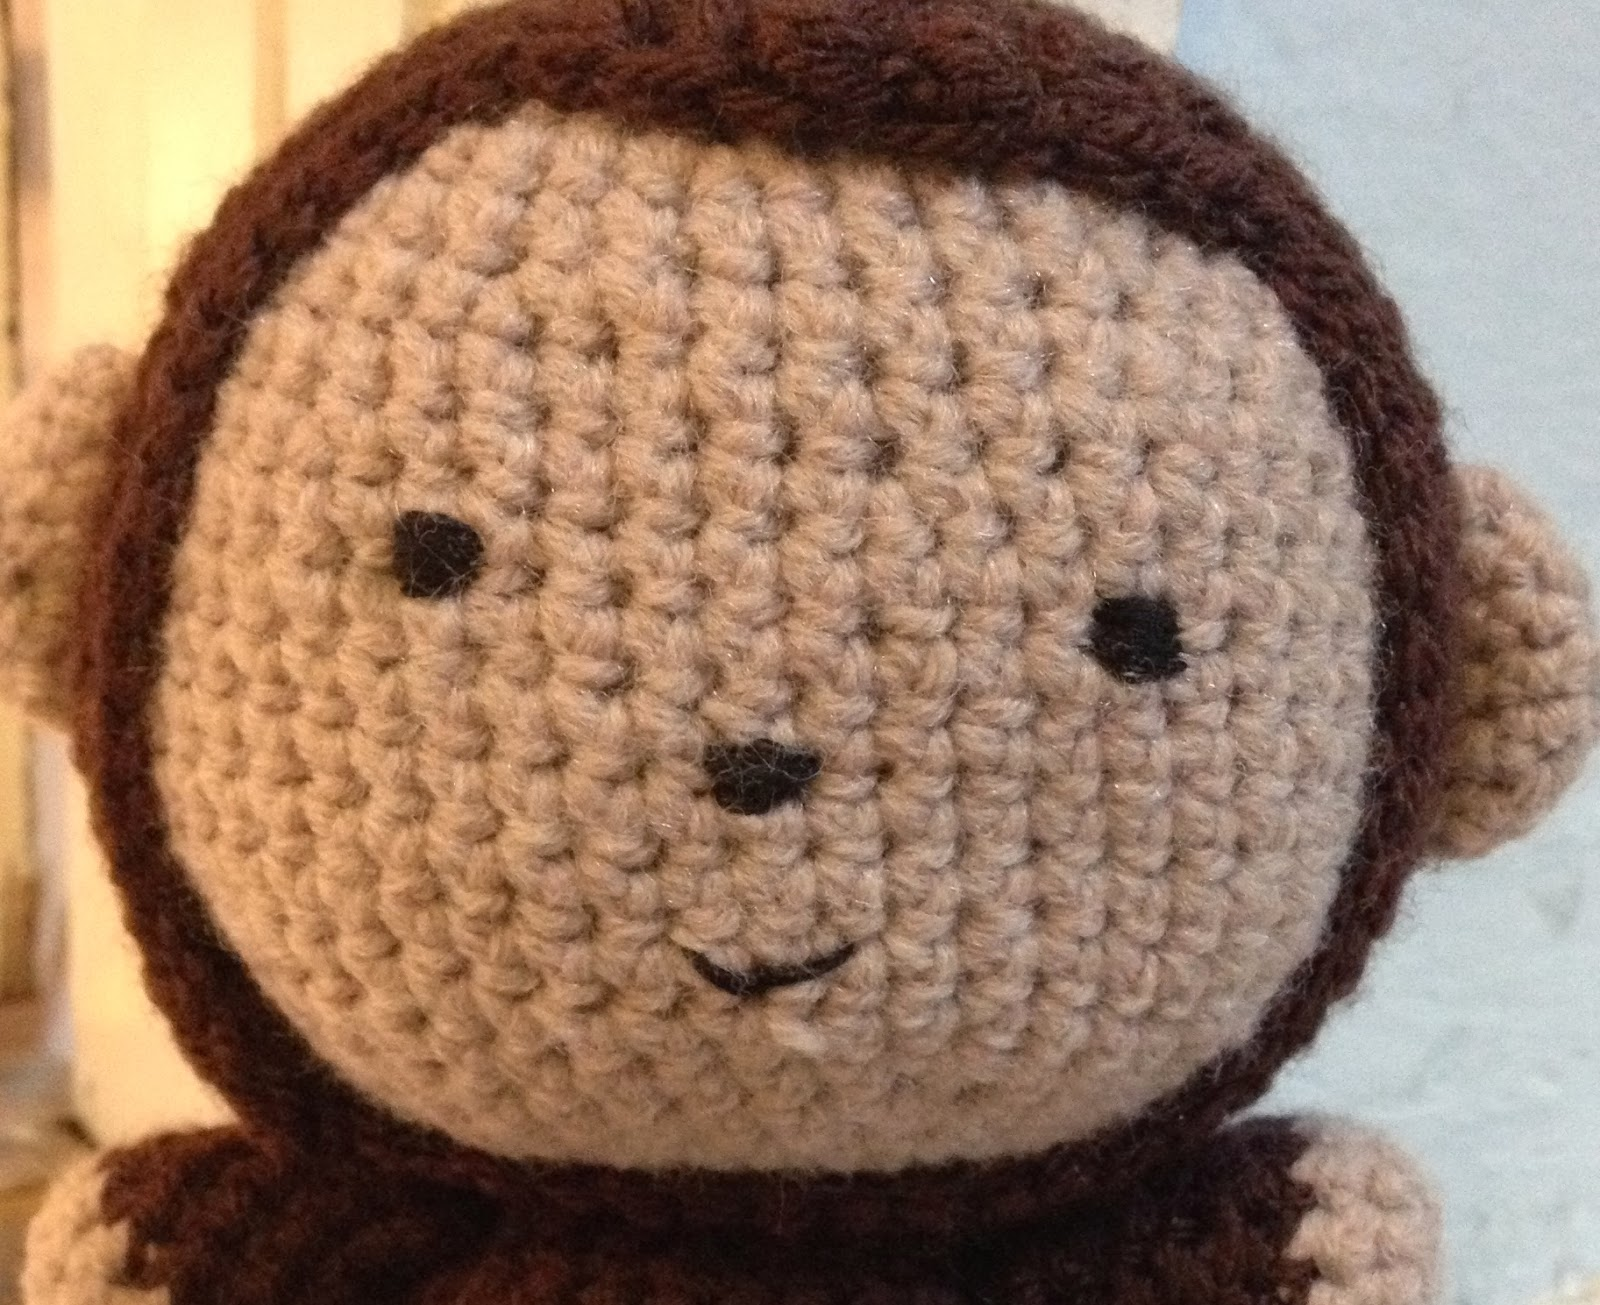 Embroidering Amigurumi Faces : The perfect hiding place: the safety eye debate